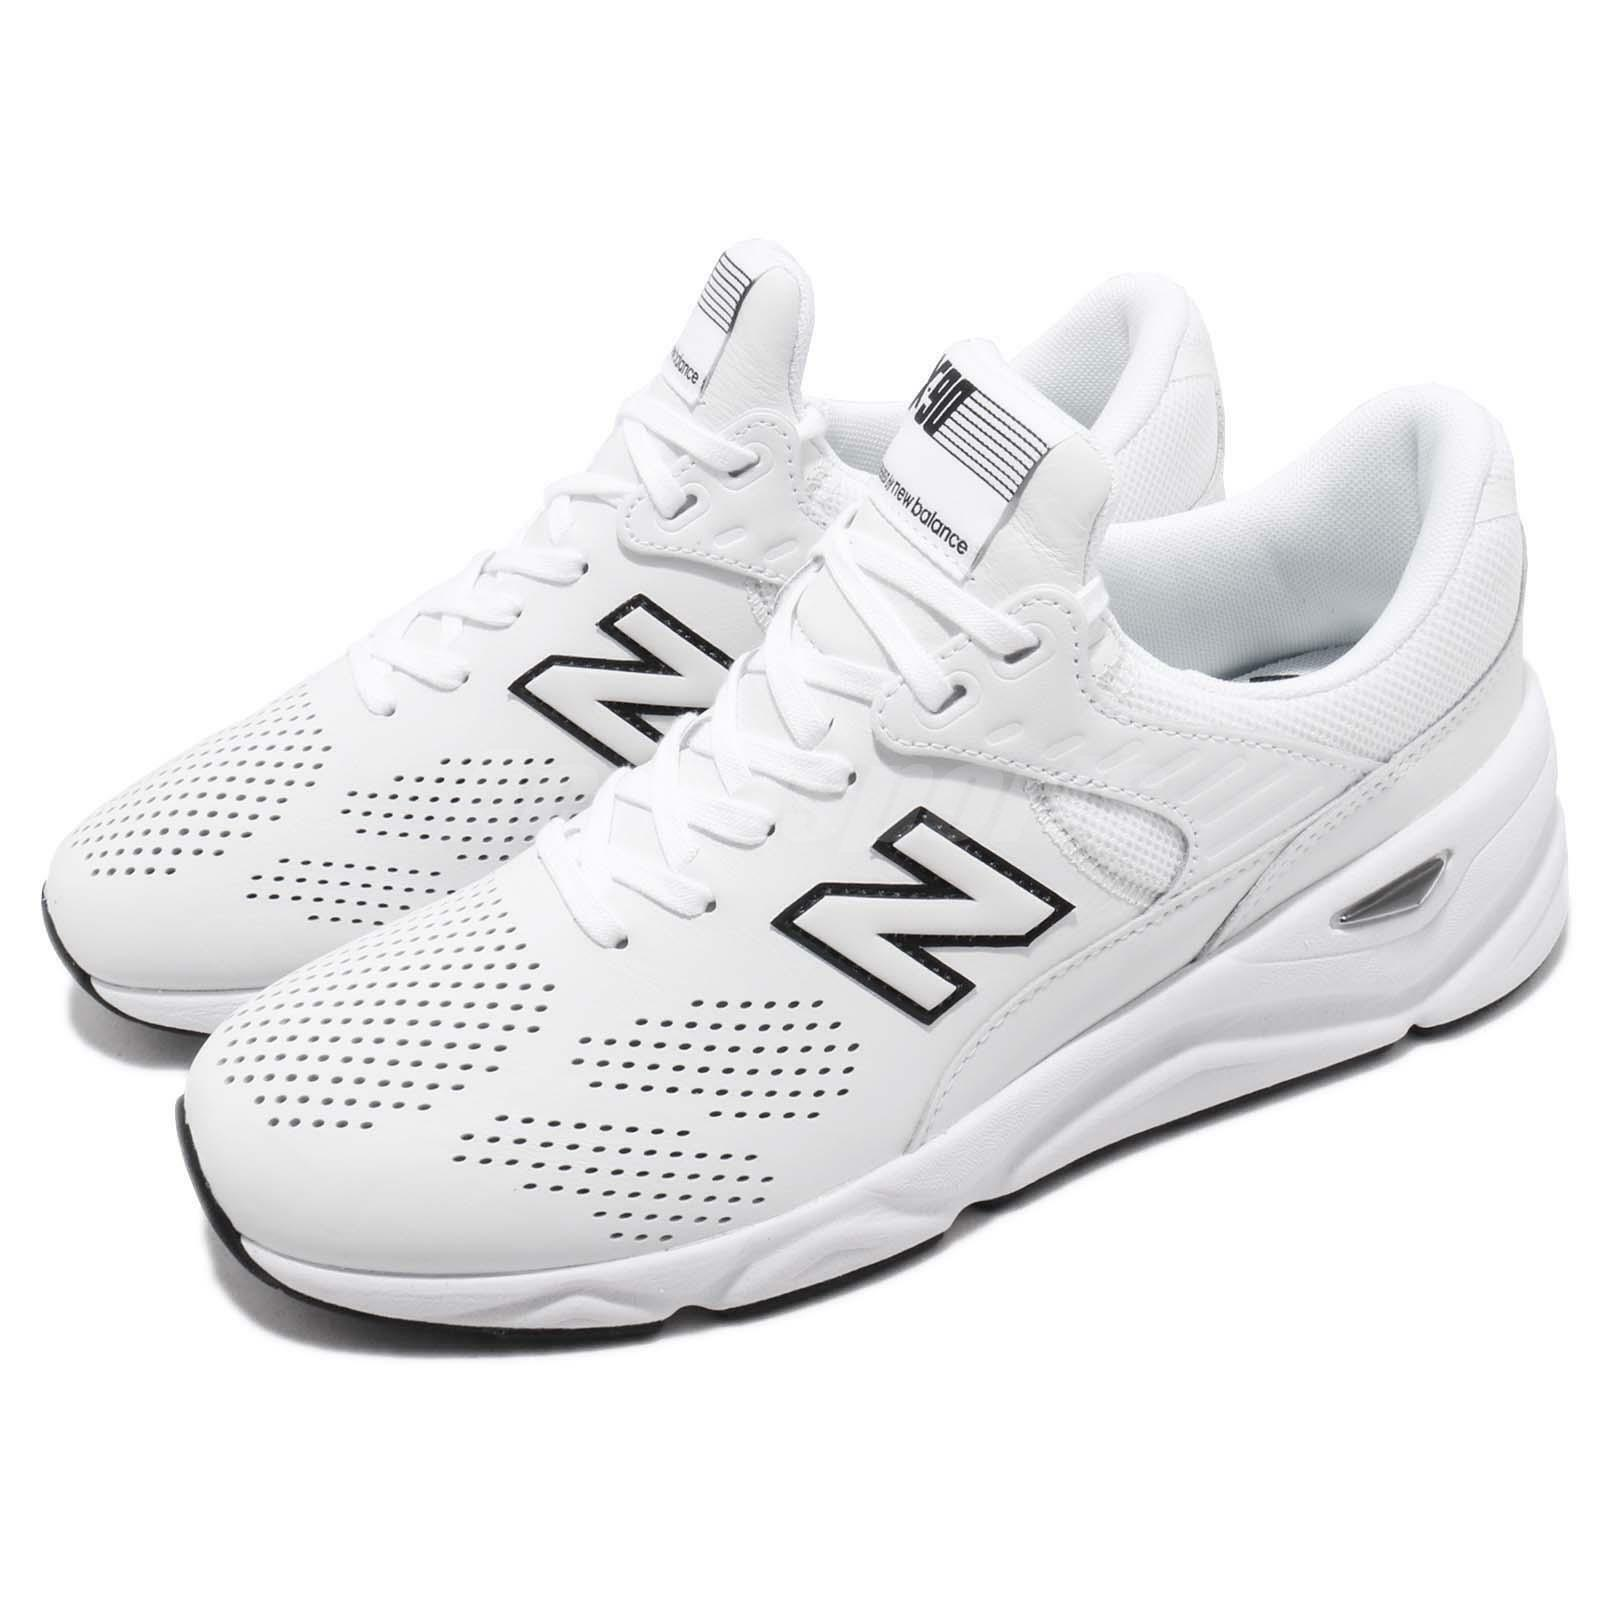 cf4948bb6cf New Balance MSX90CLE D White Black Men Running Casual shoes shoes shoes  Sneakers MSX90CLED 991456 ...